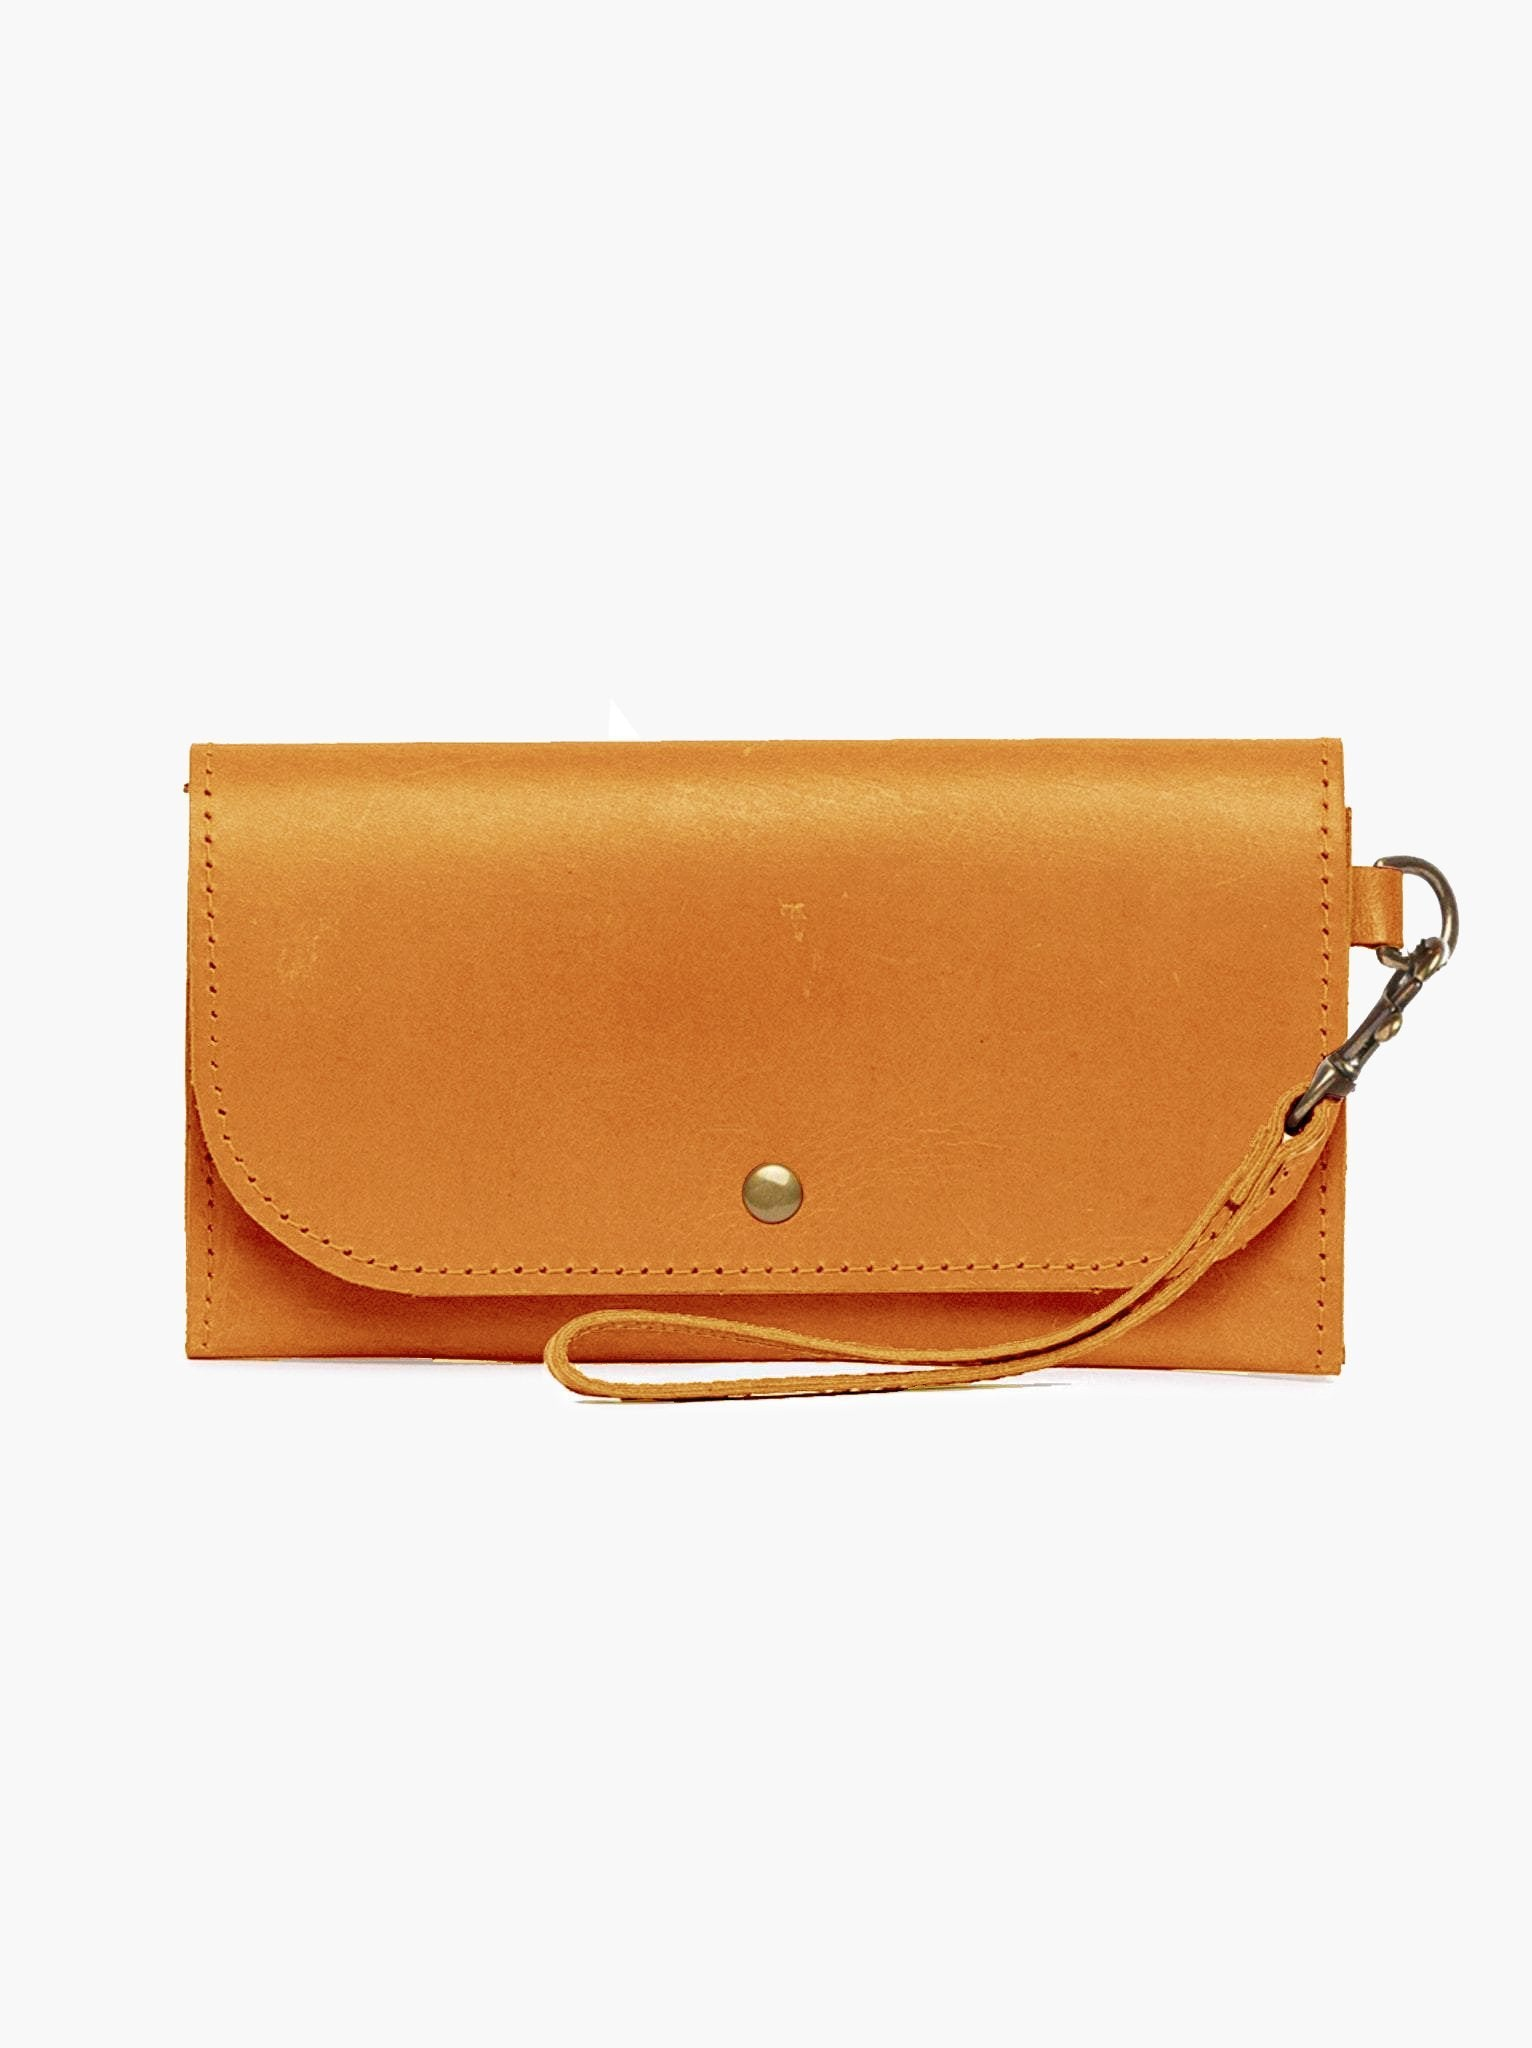 ABLE Mare Phone Wallet - Provisions Mercantile